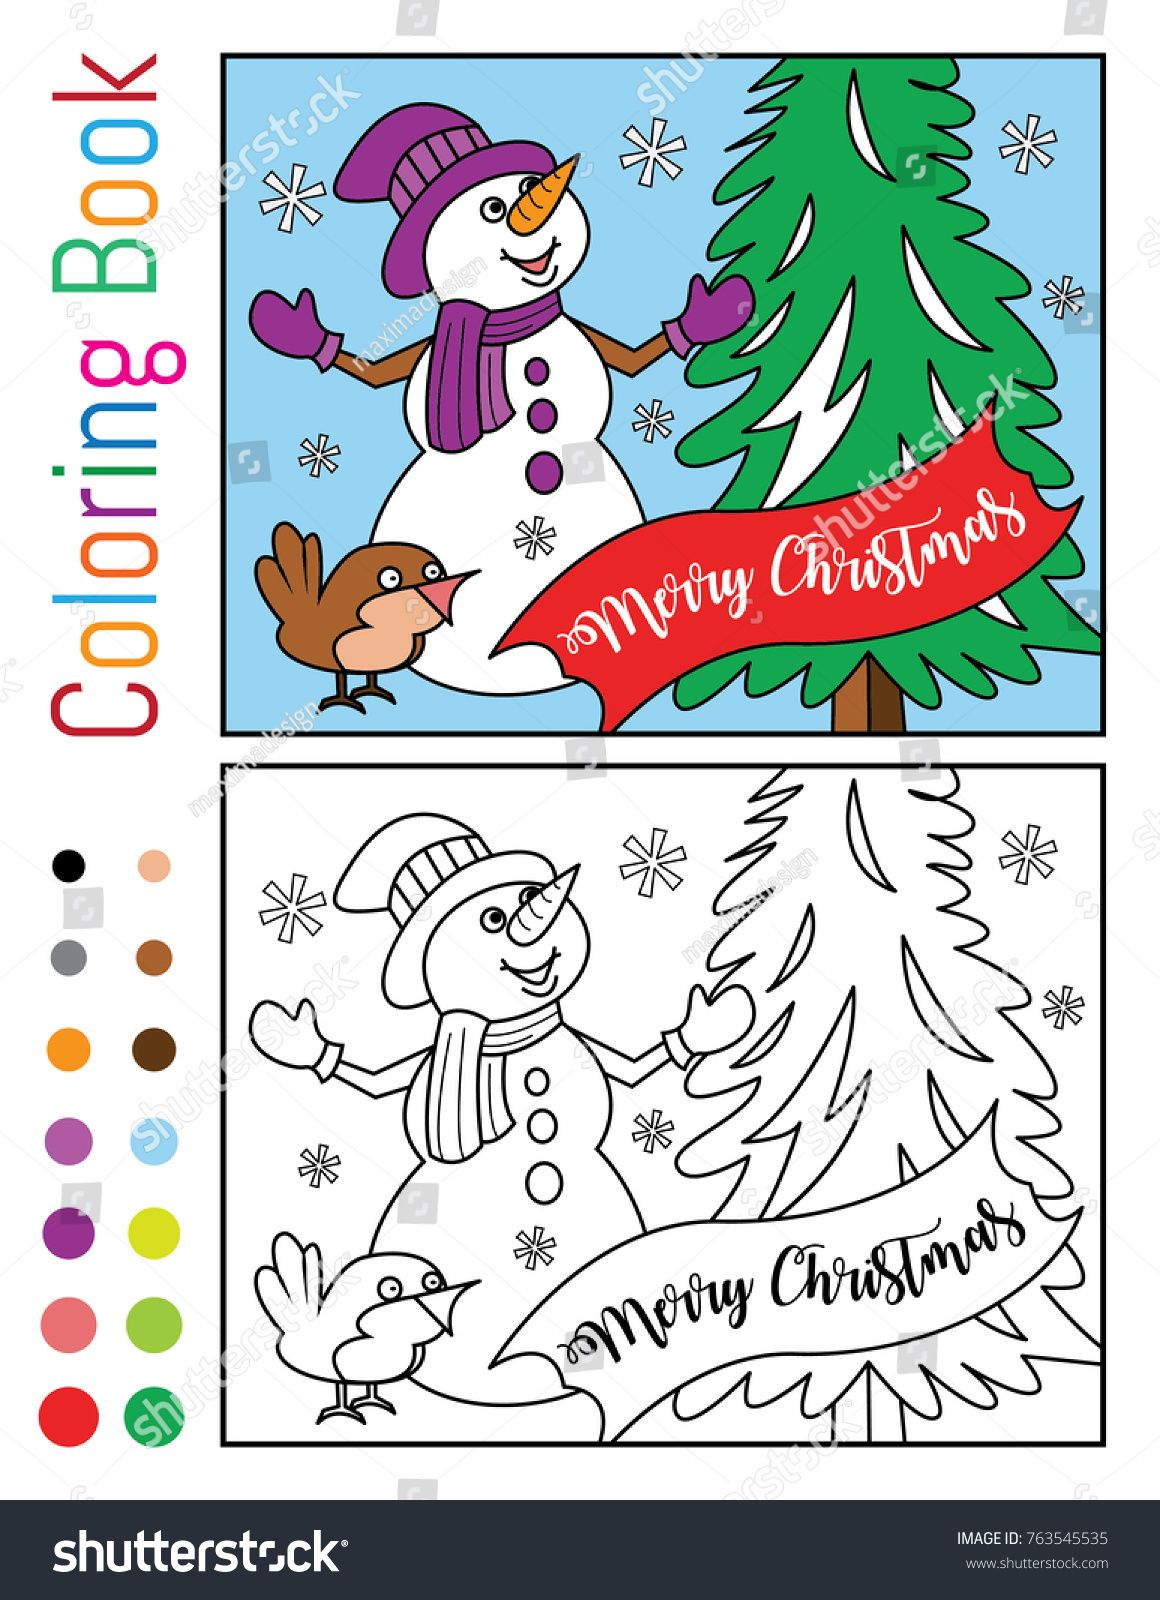 merry christmas with snowman and bird coloring book vector illustration for sale